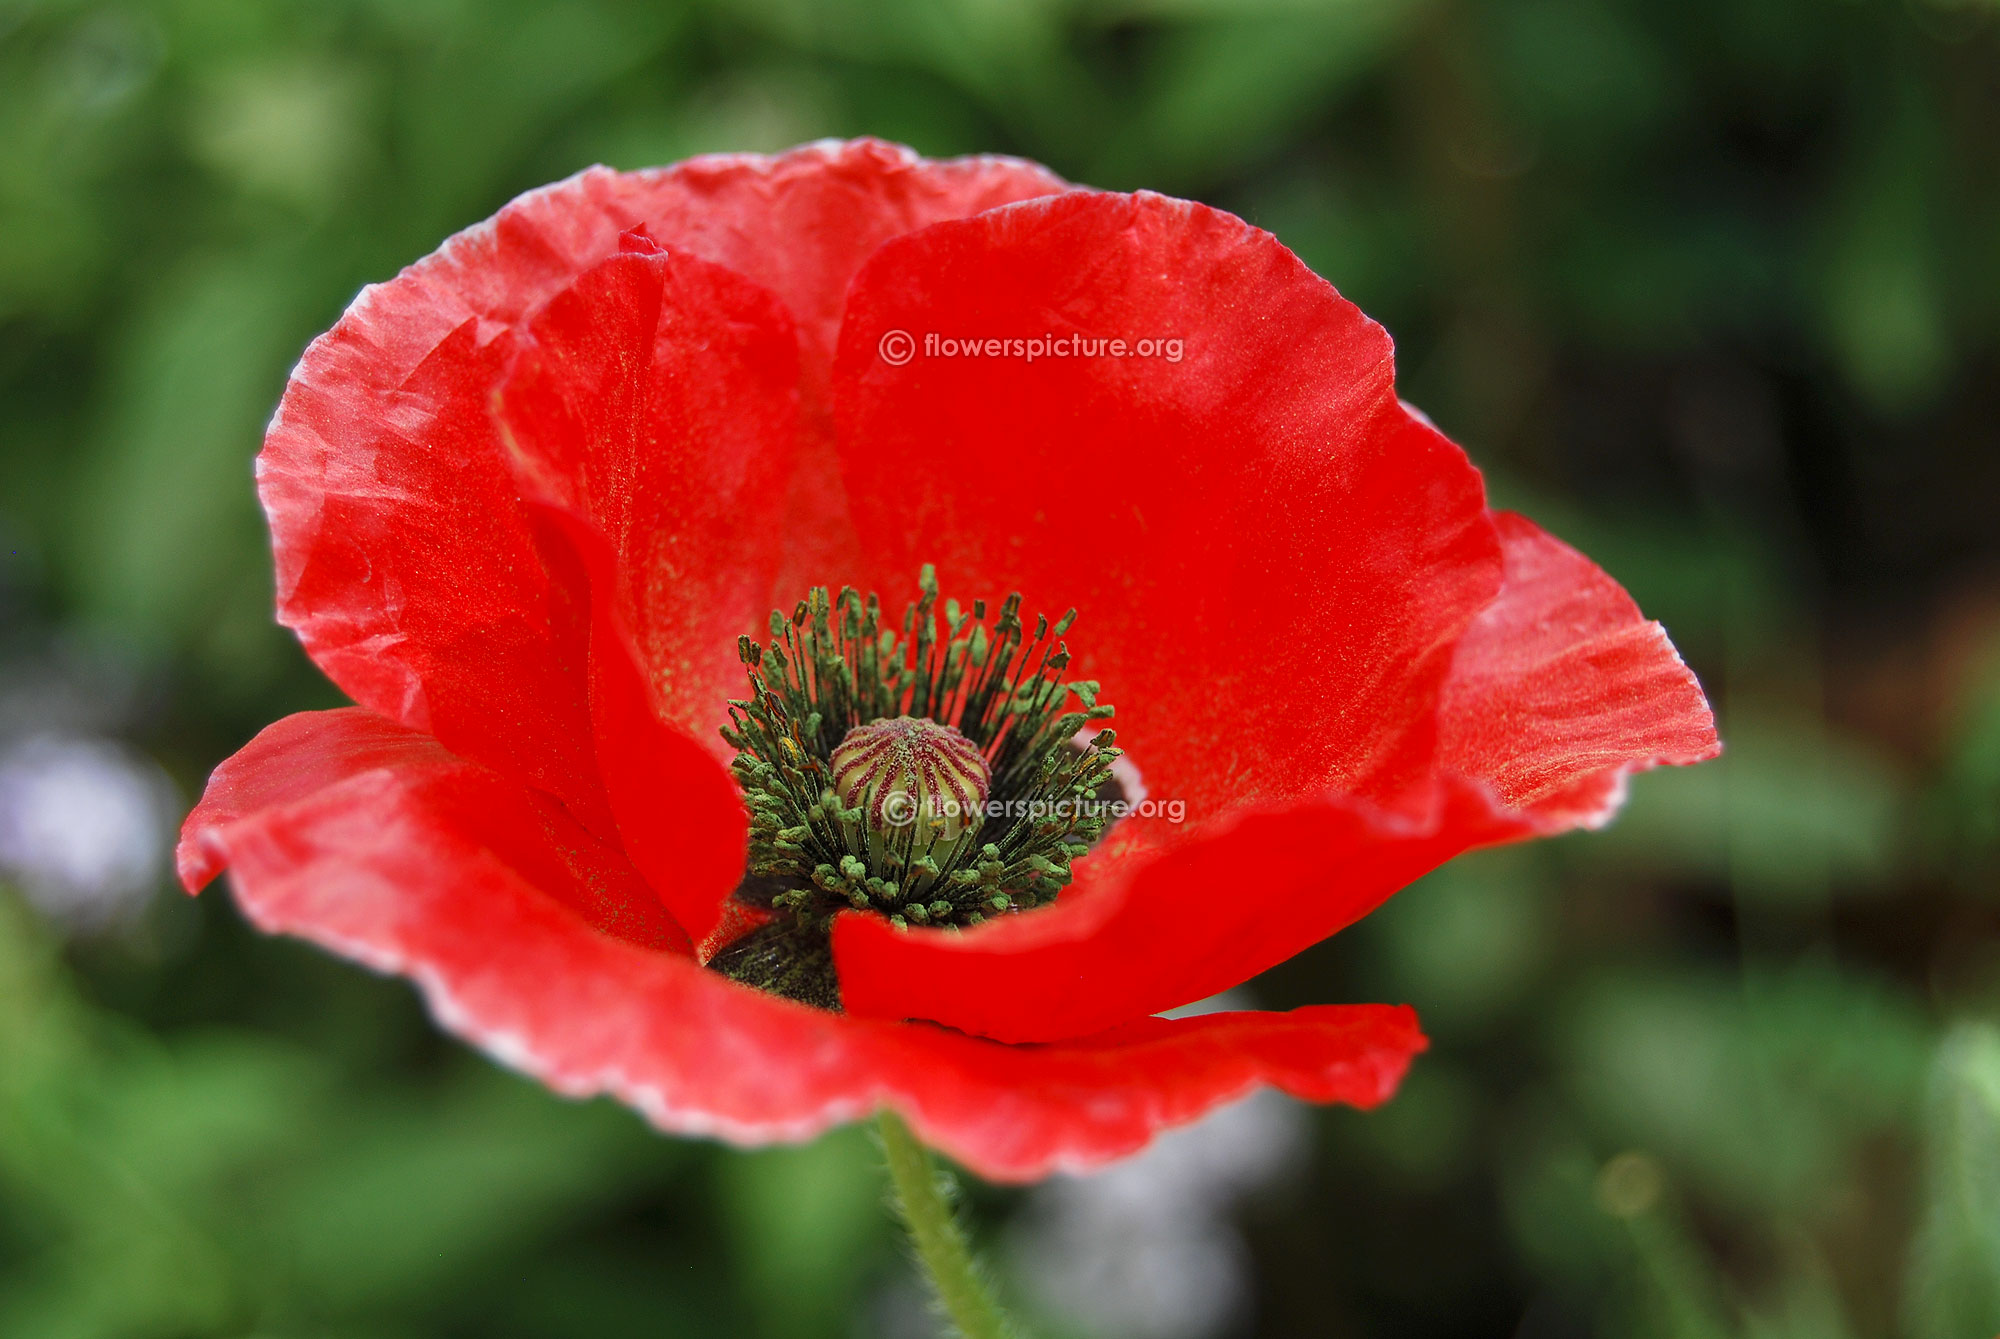 Poppy flower varieties red poppy flower mightylinksfo Image collections